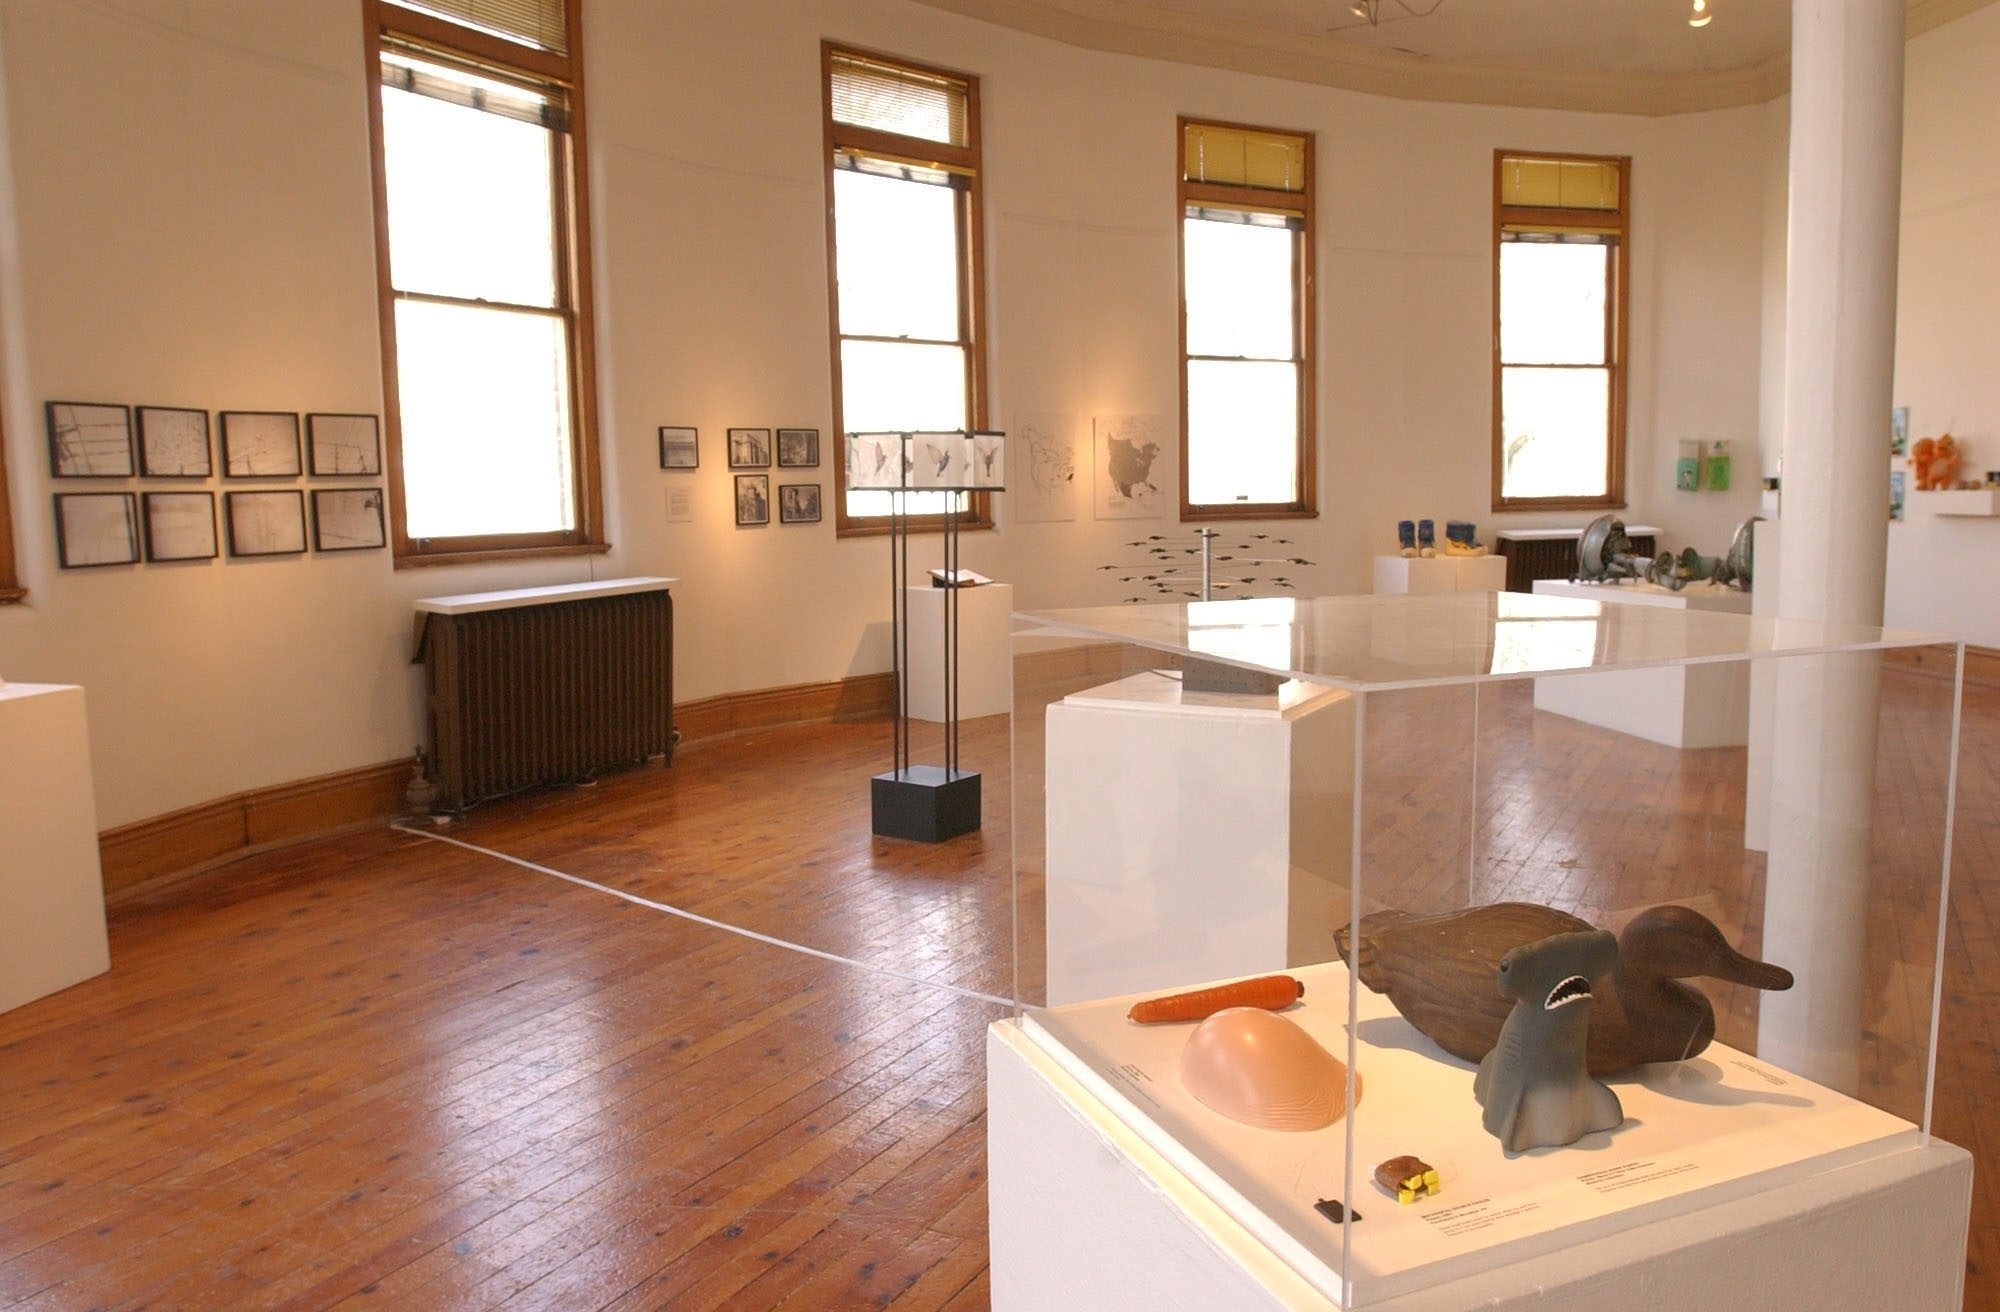 Work at North Tonawanda's Carnegie Arts Center, which will be funded by U.S. block grants, will allow easier access to displays in the Rotunda Gallery.